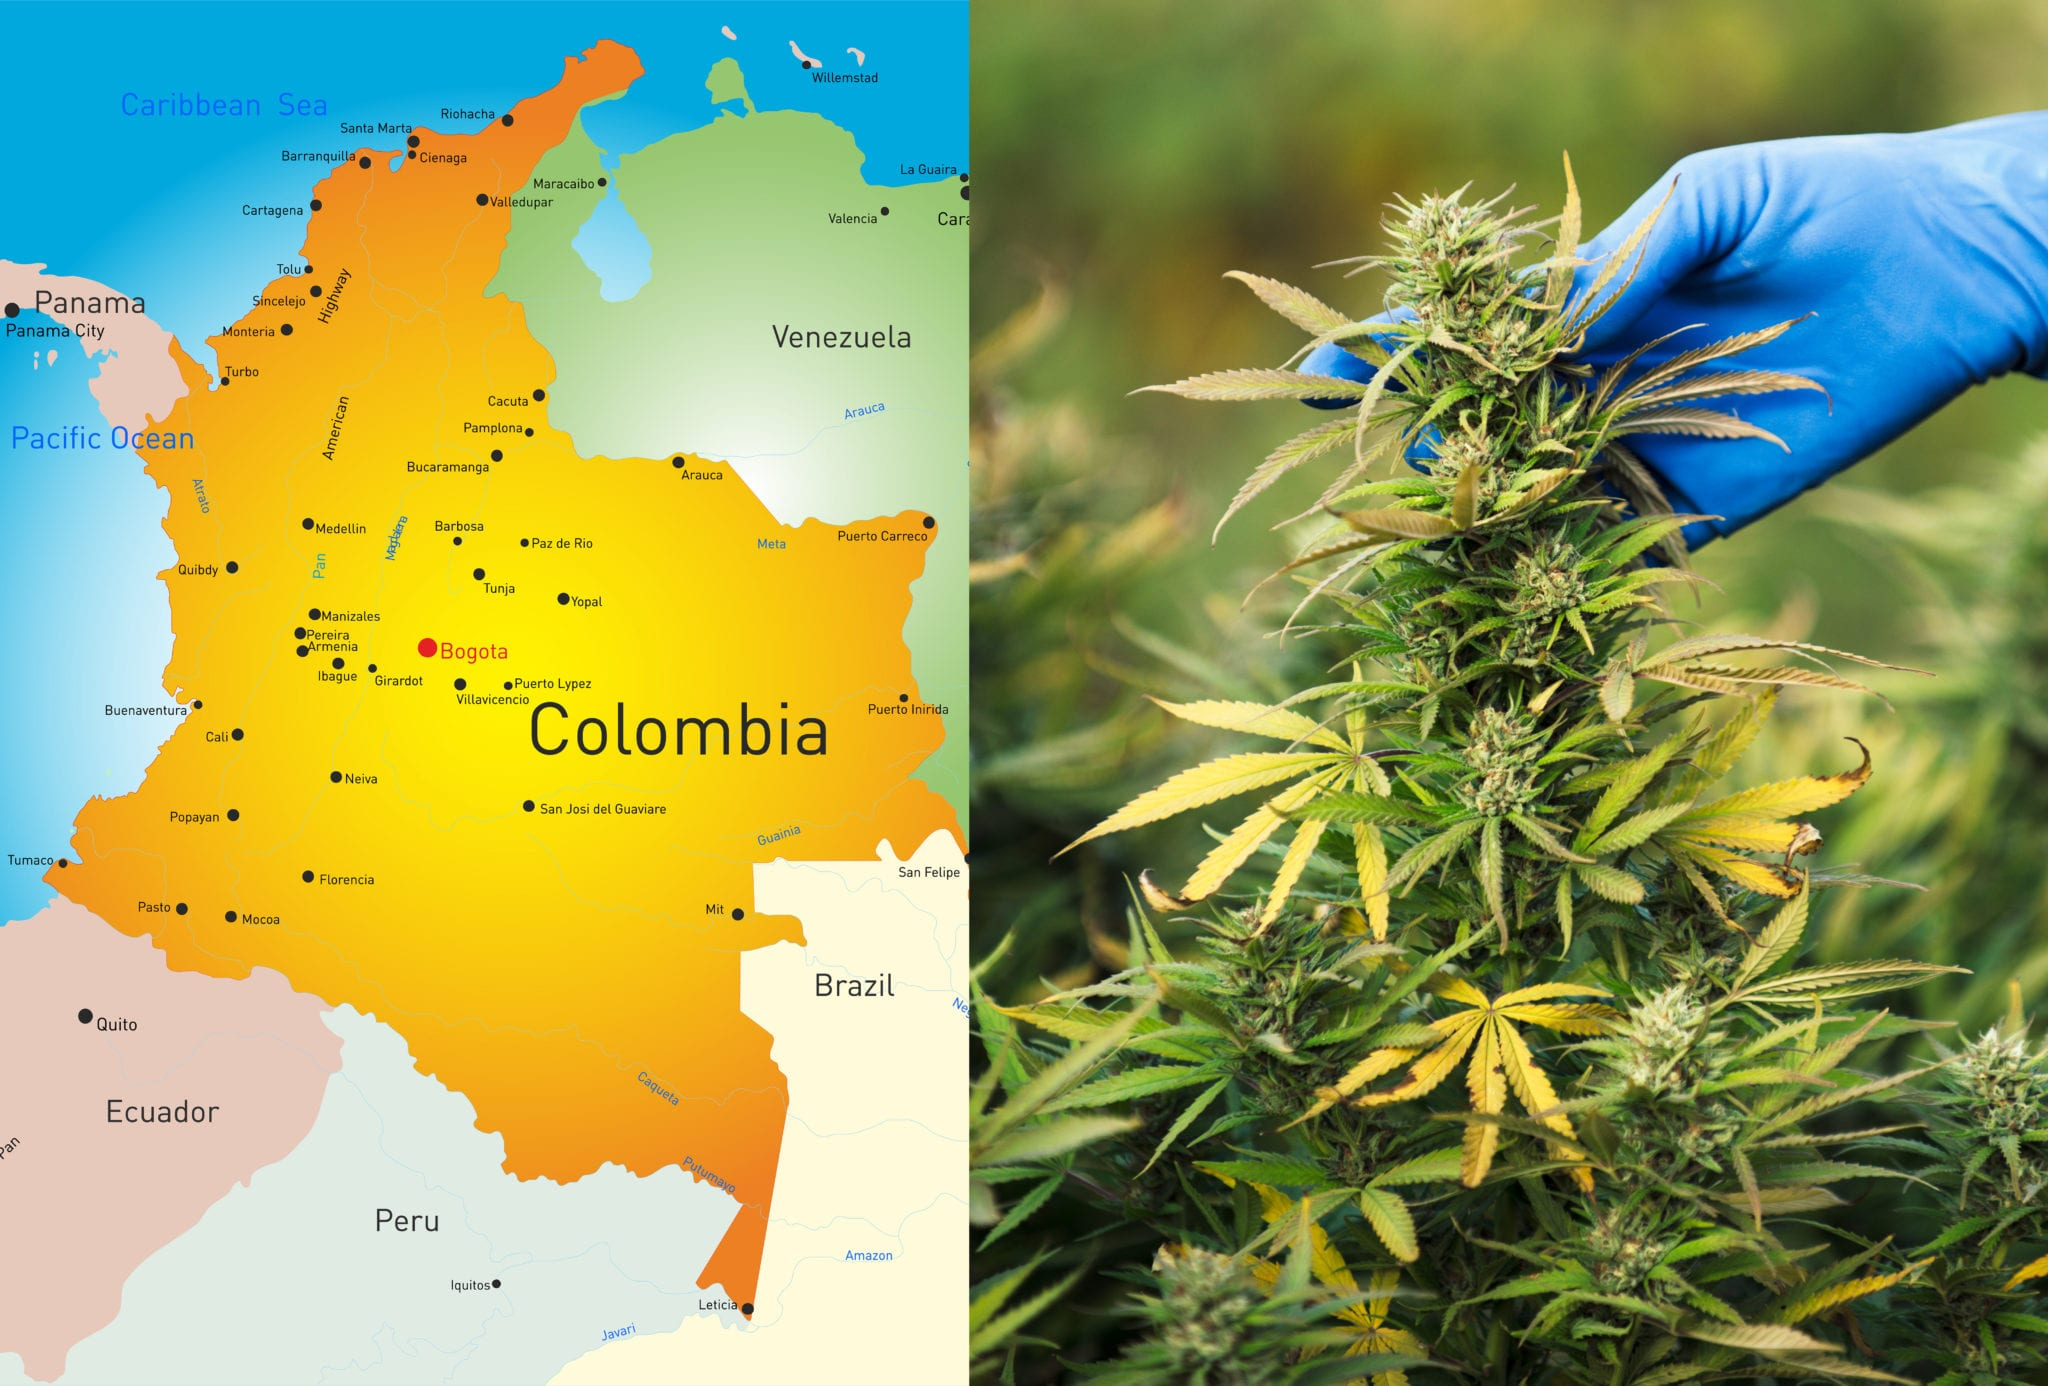 The South American nation legalized medical marijuana three years ago, and last week Colombia's Constitutional Court lifted the ban on public cannabis consumption signalling the country, noted for ideal growing conditions and huge export potential, is closer to complete legalization of the drug.